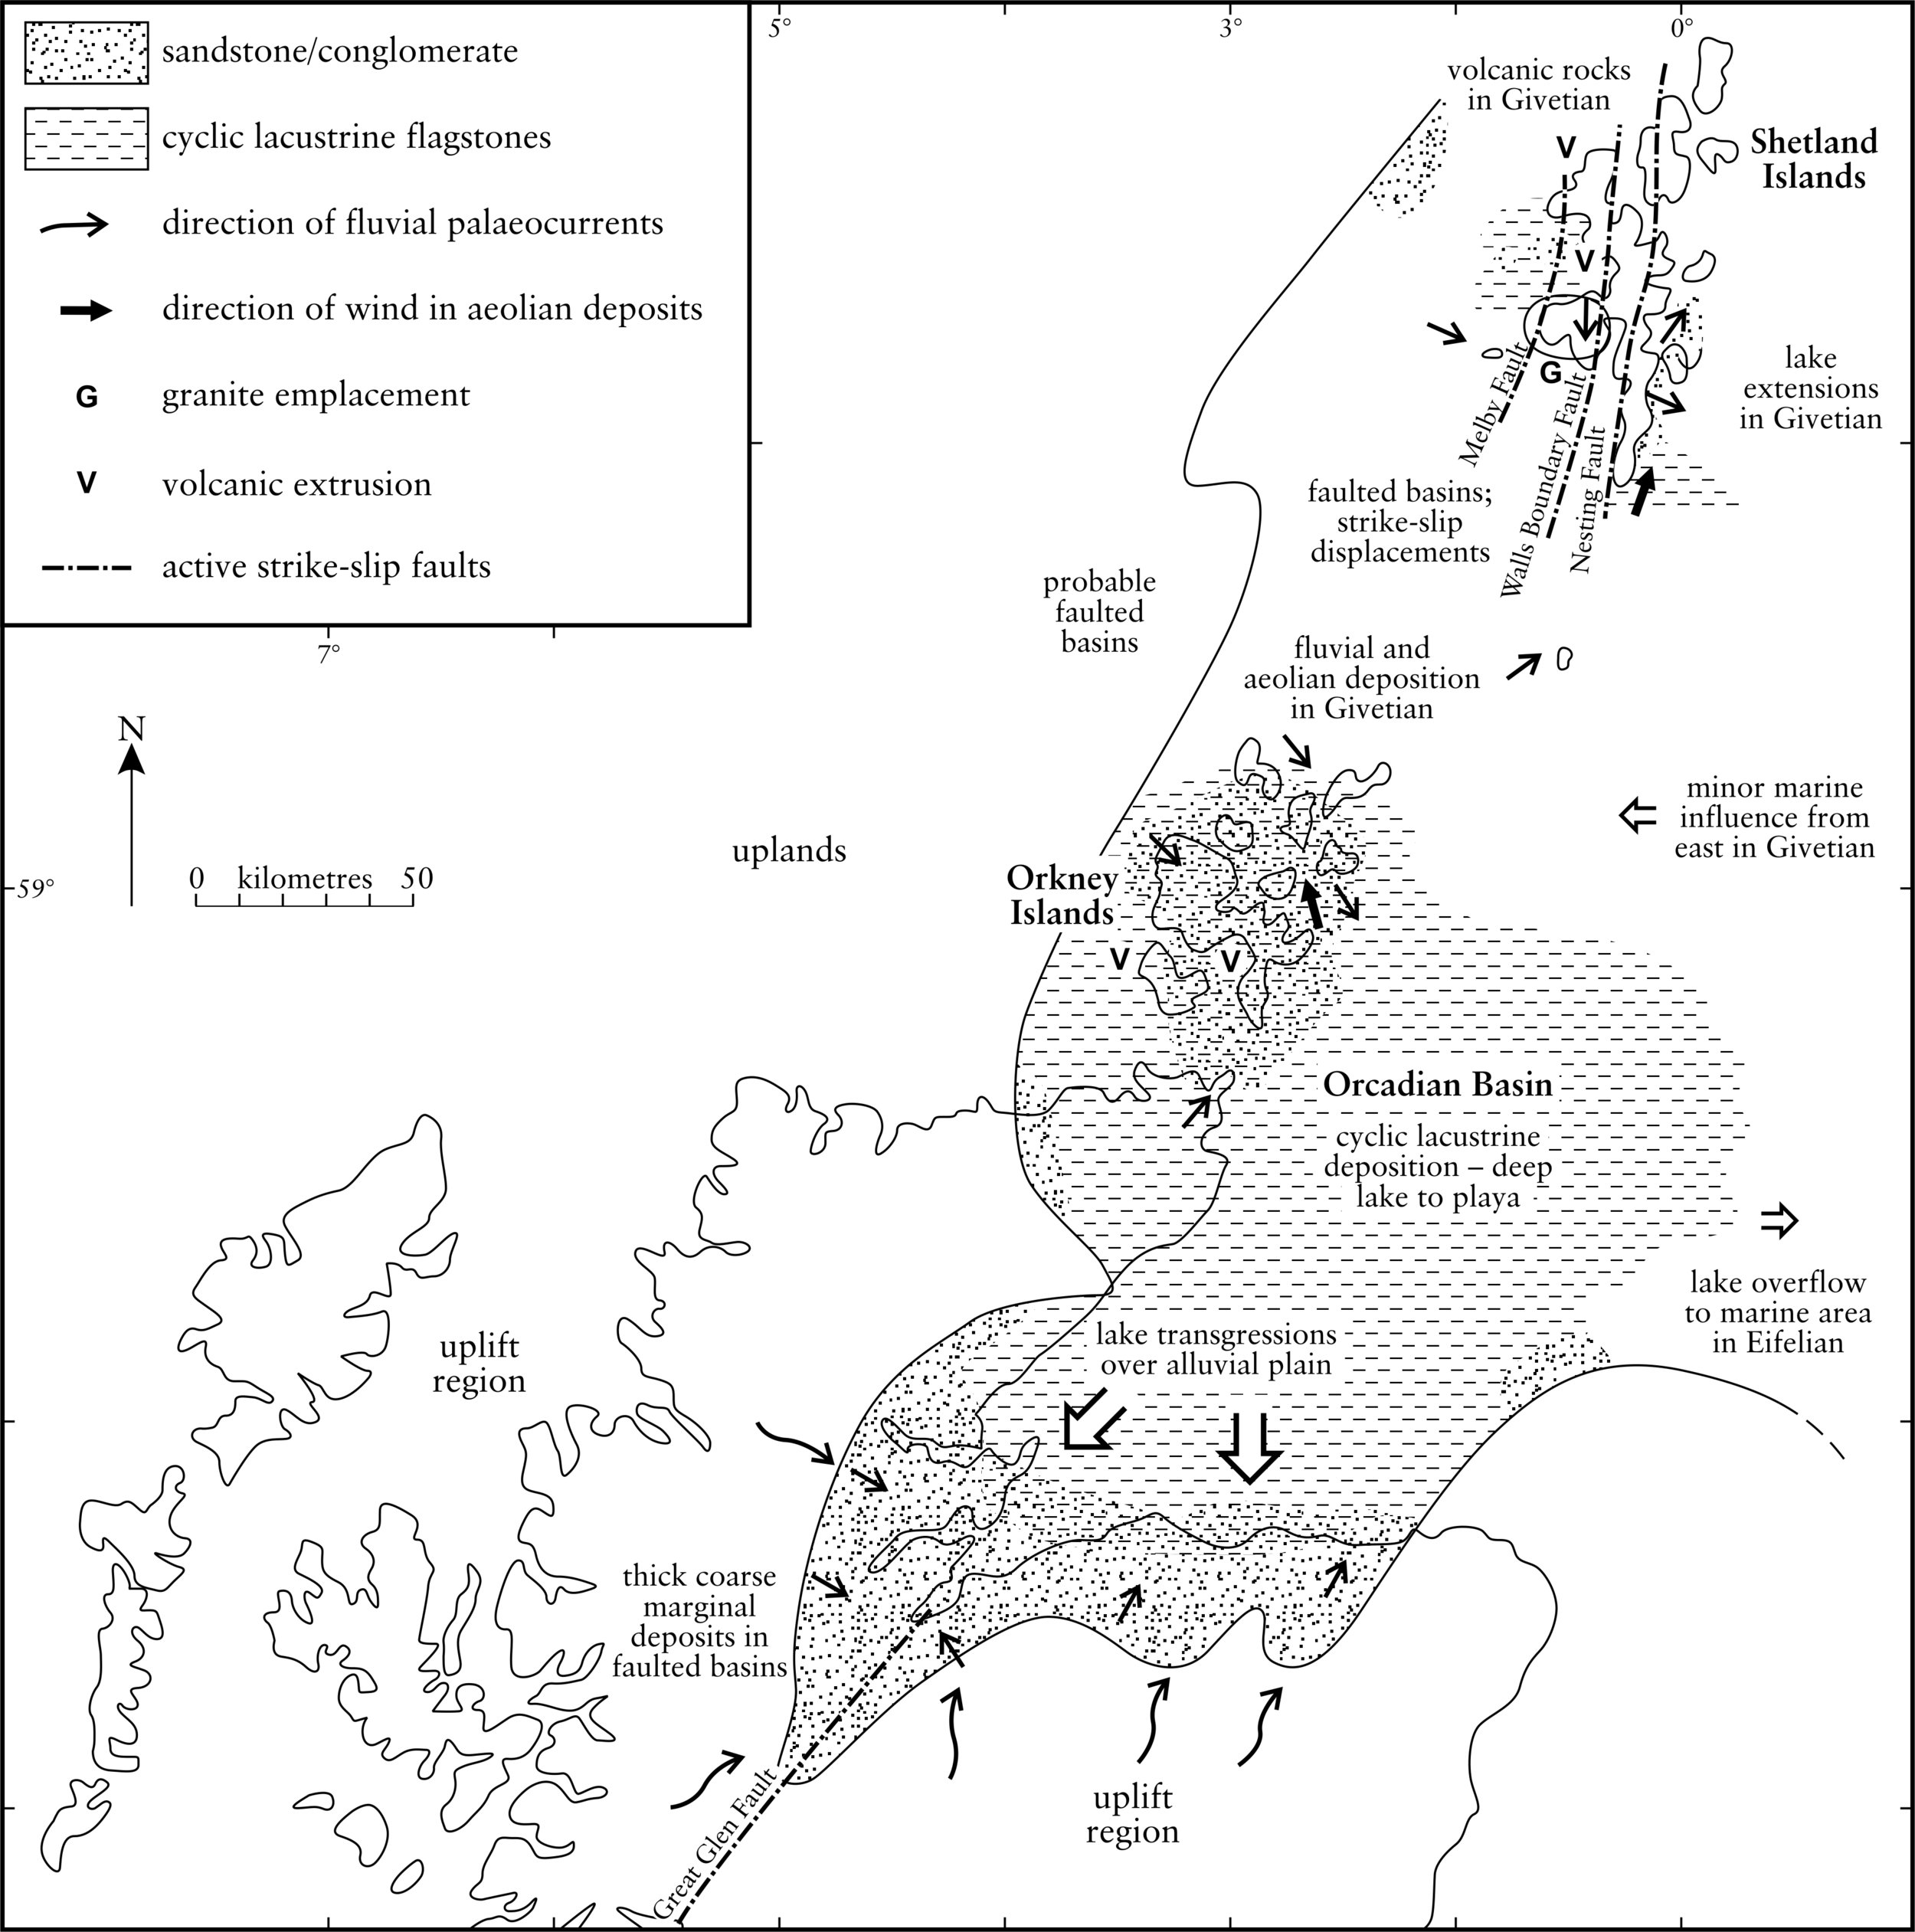 Map of the Orcadian Basin